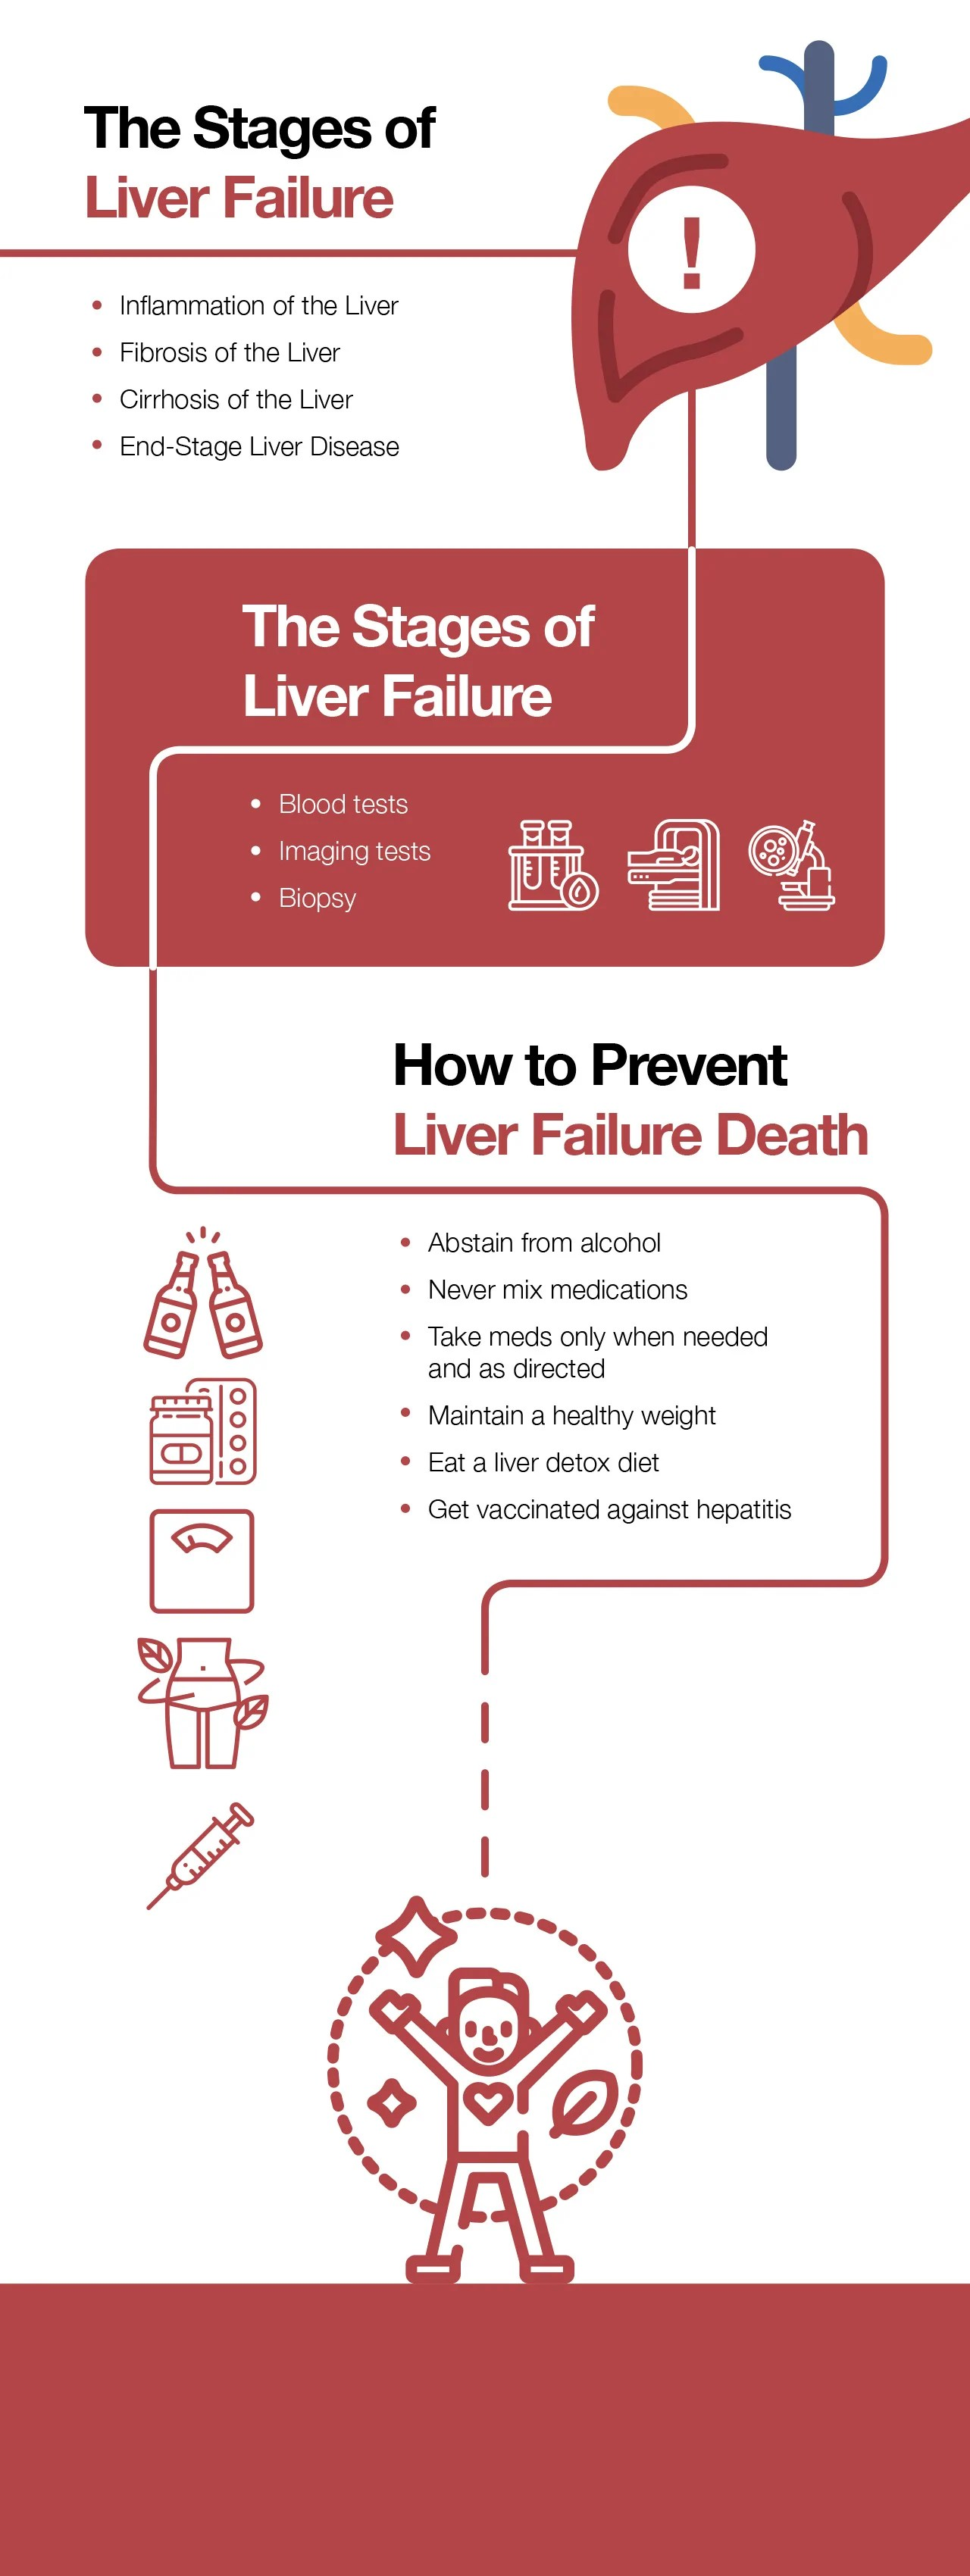 Liver Failure Death: Causes Symptoms and Stages - The ...